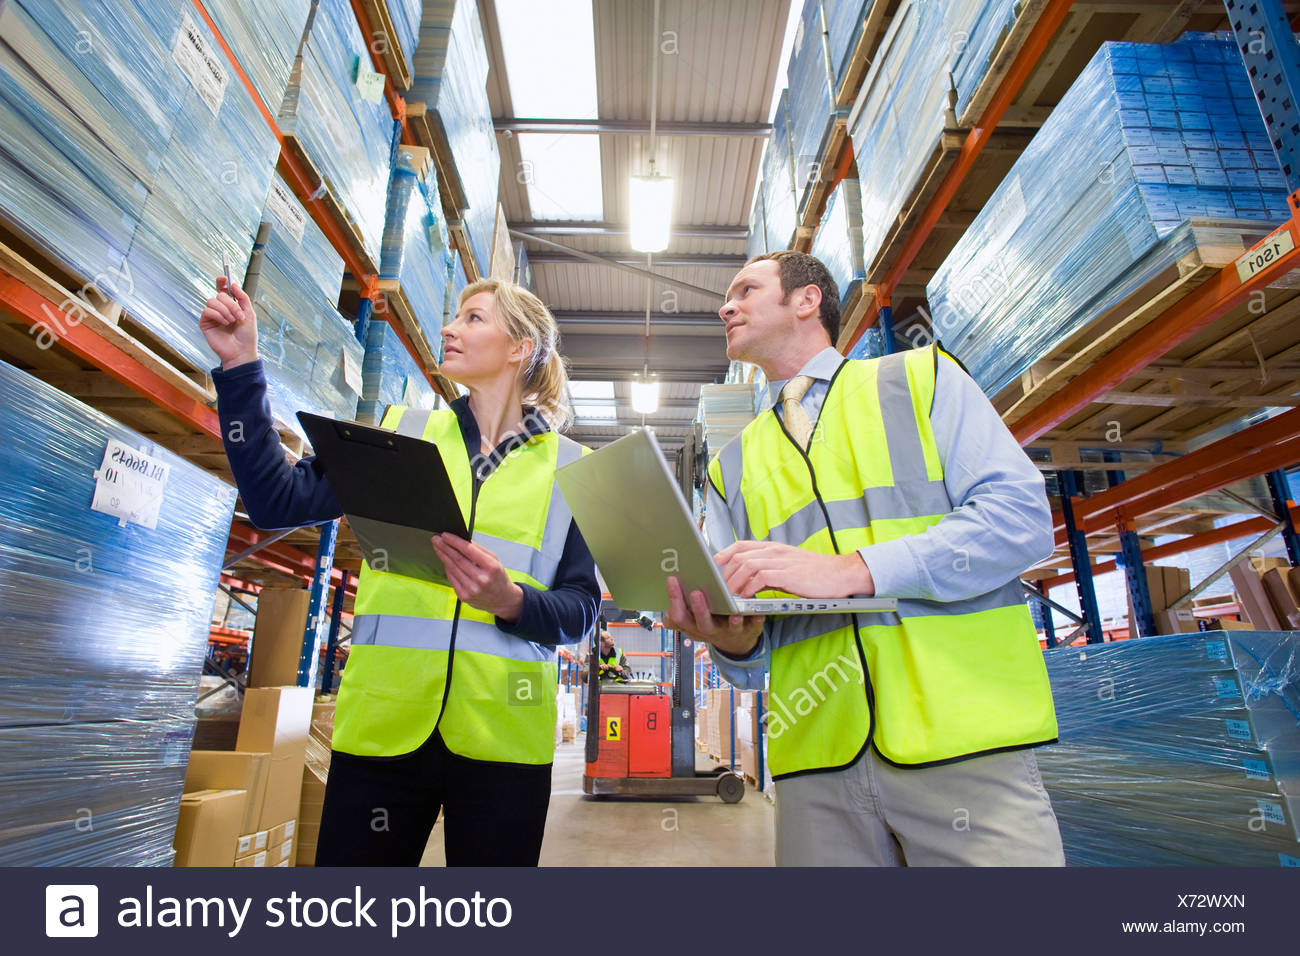 Warehouse manager and worker checking inventory with clipboard and laptop - Stock Image